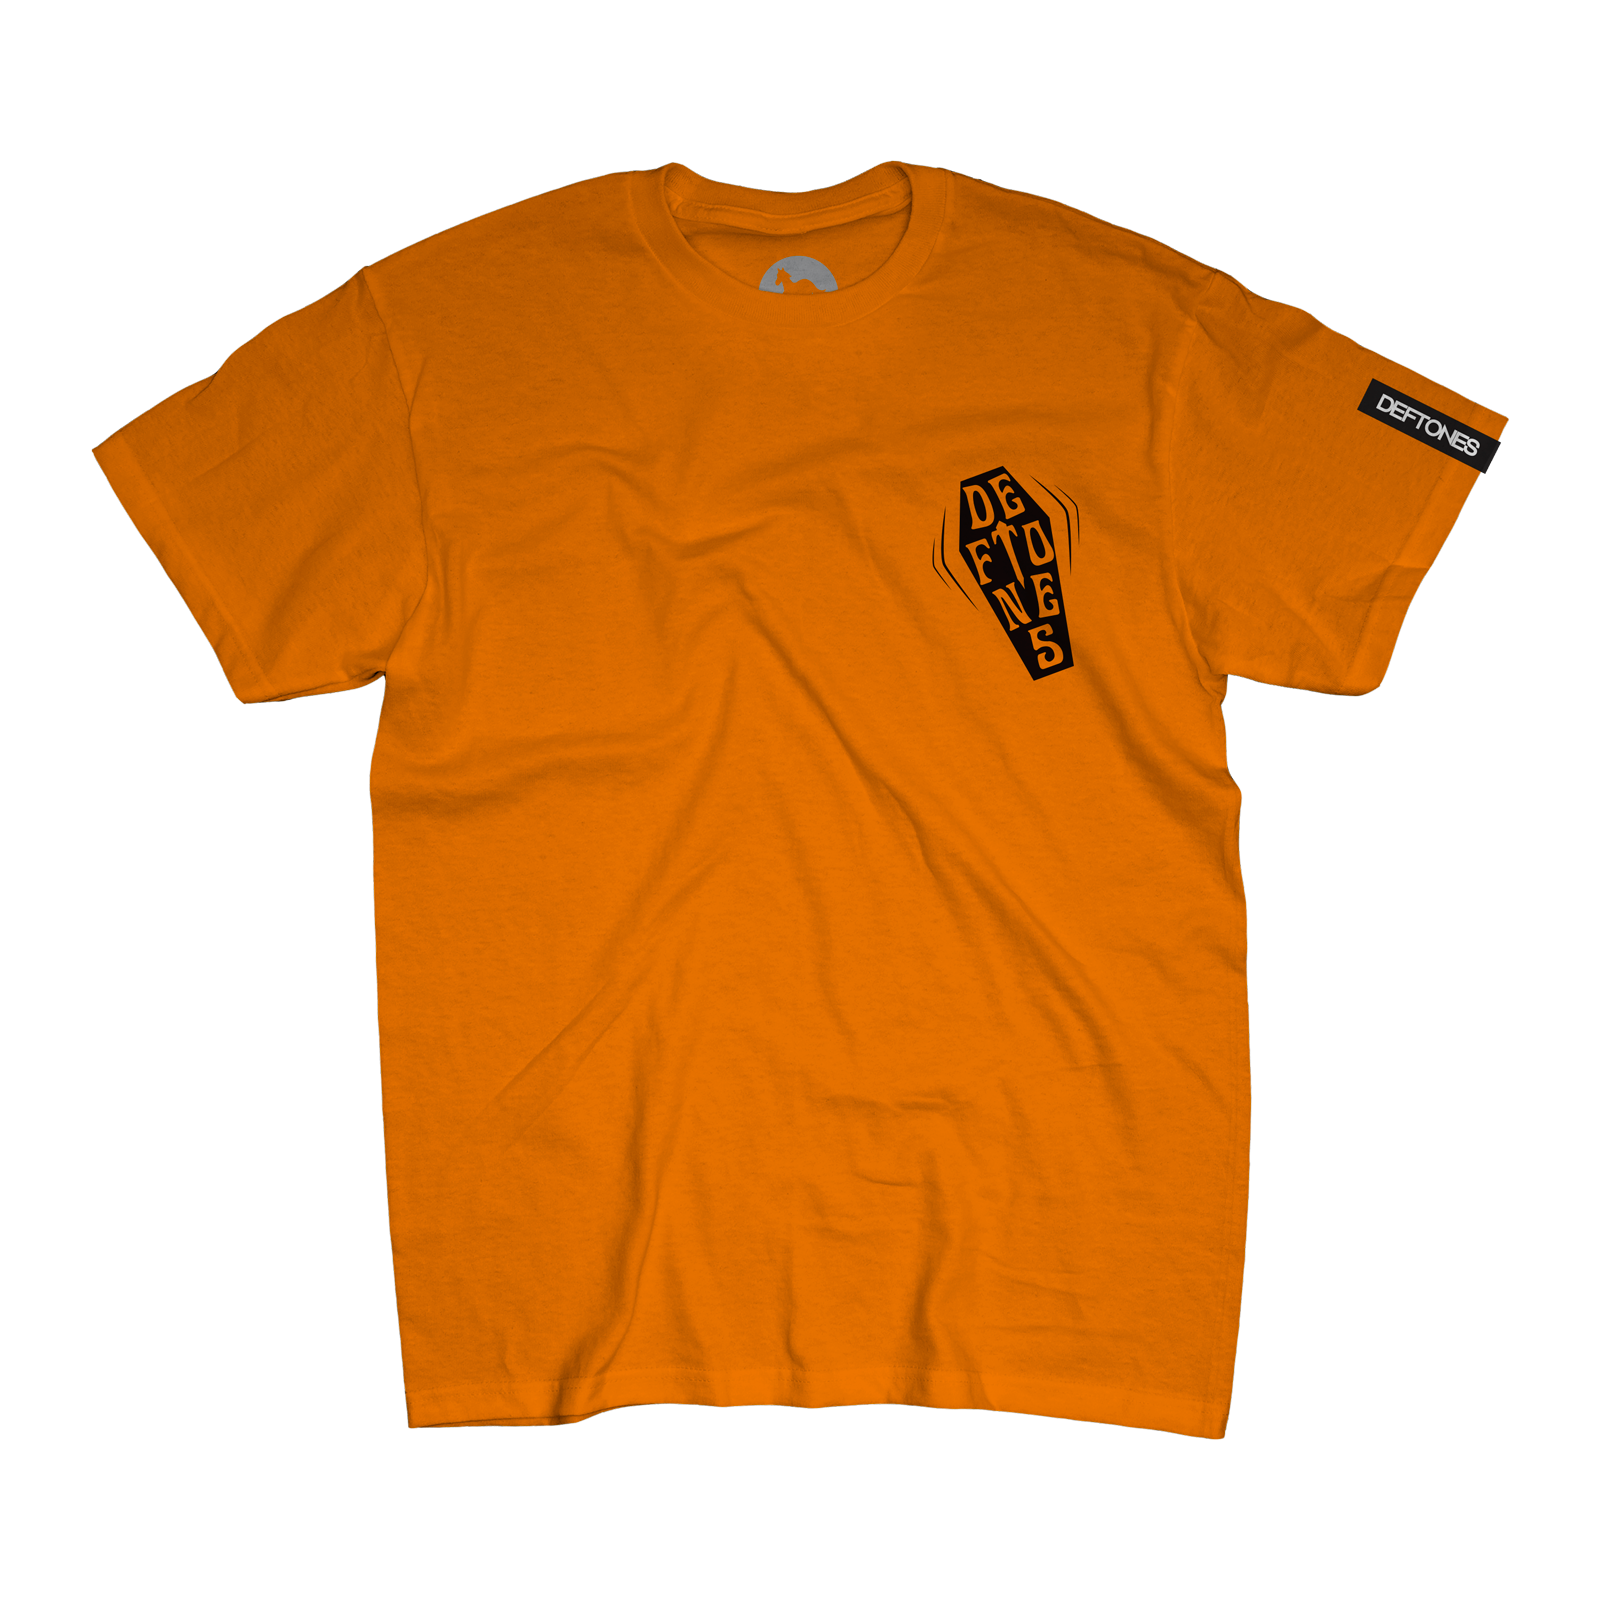 Coffin Logo Tee on Orange